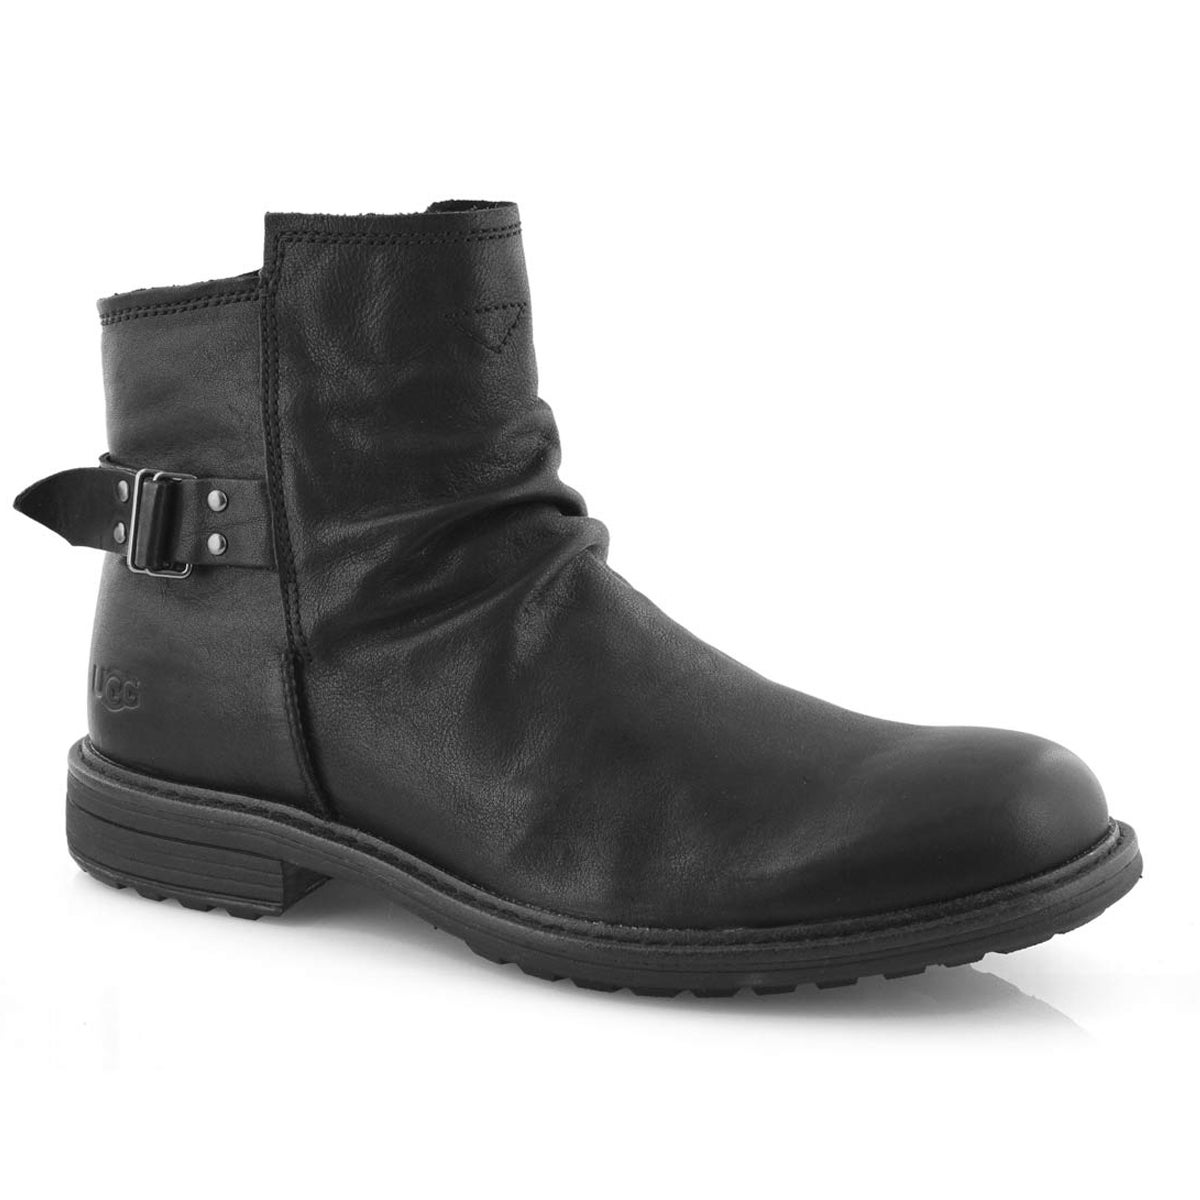 Mns Morrison black pull on ankle boot